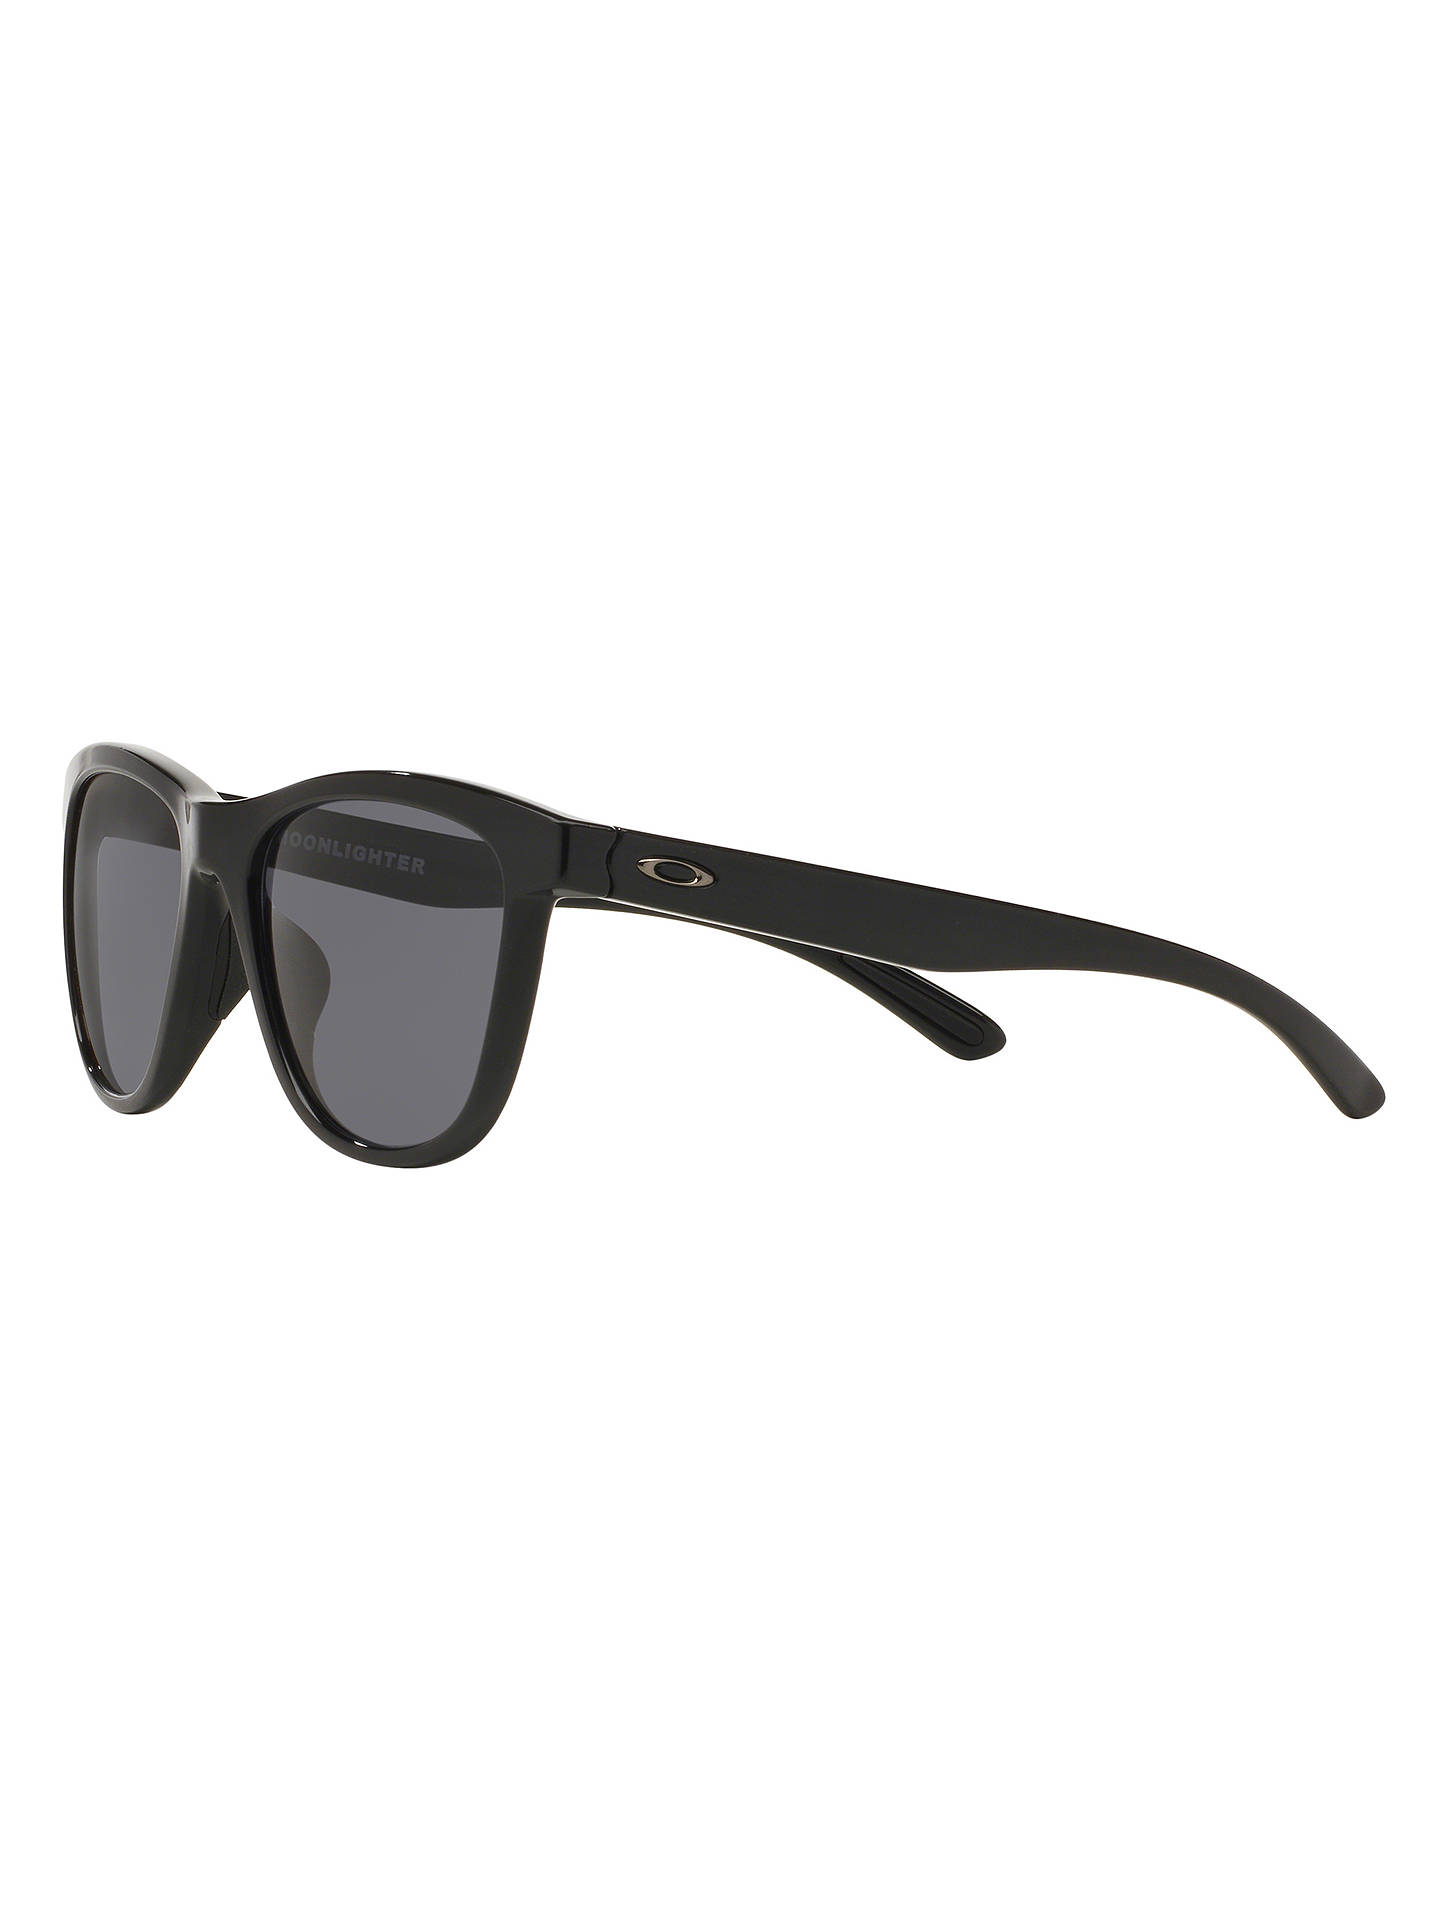 9748afaa94 Oakley OO9320 Moonlighter D-Frame Sunglasses at John Lewis   Partners